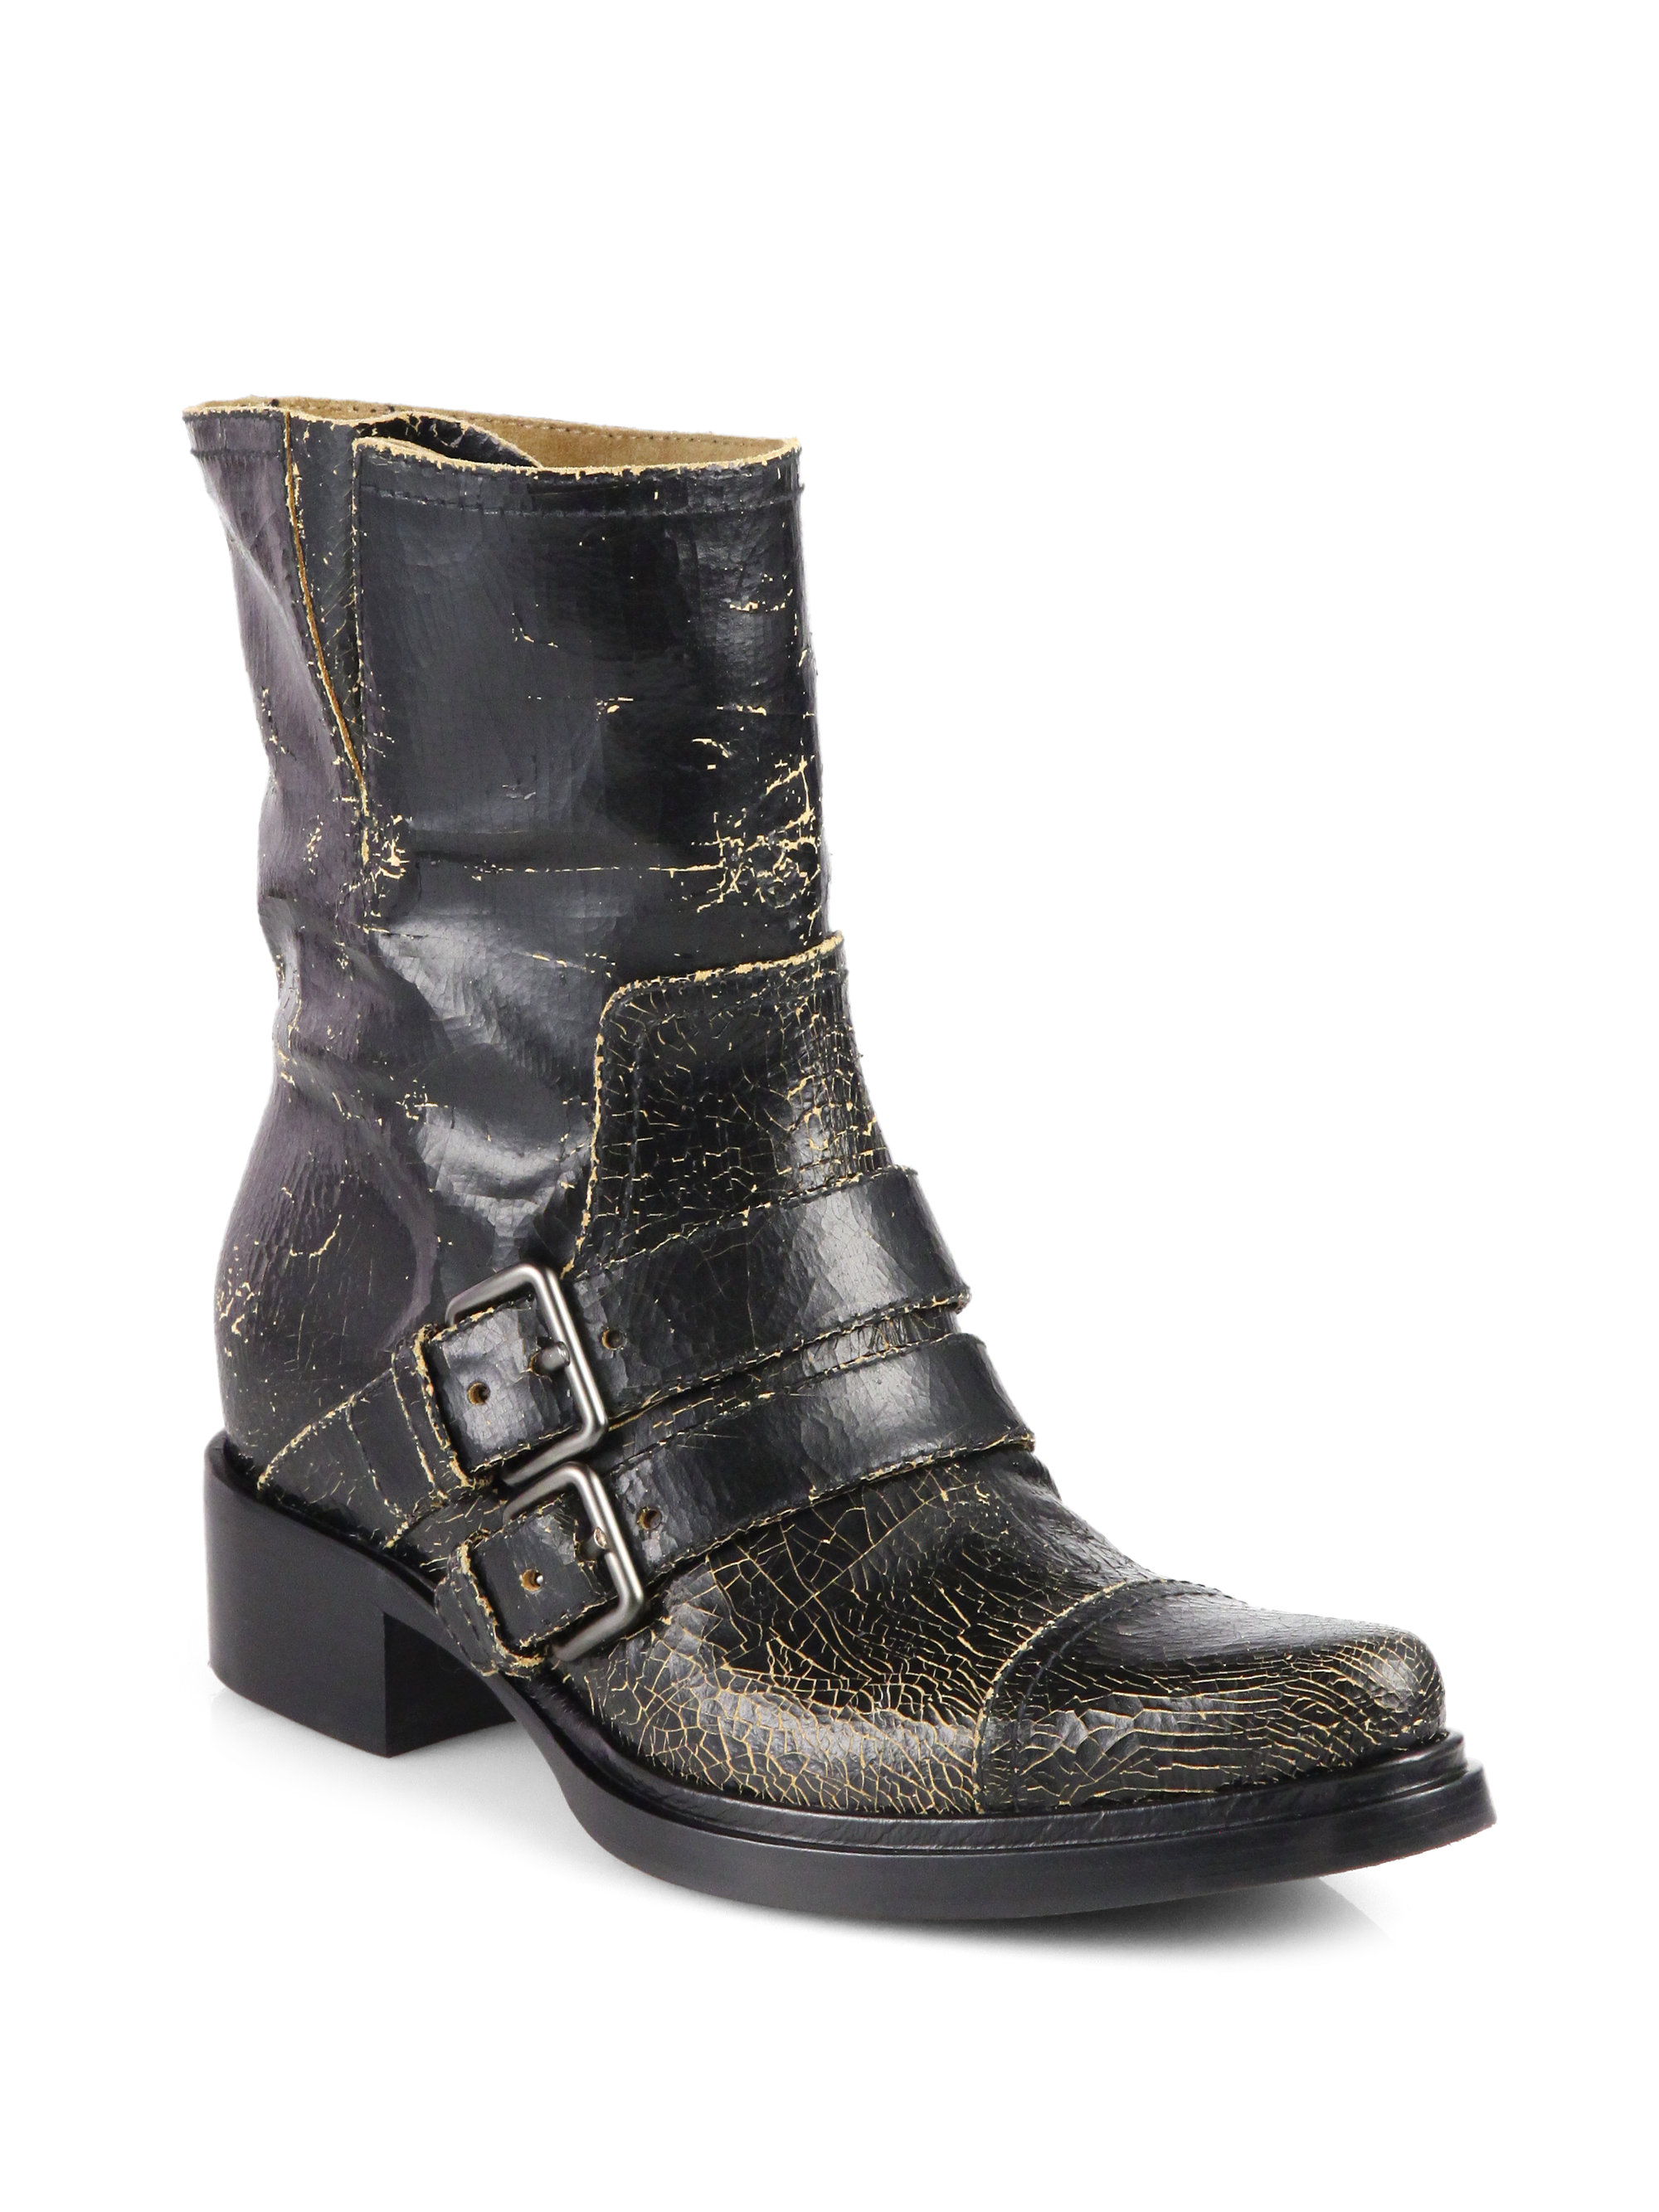 miu miu distressed leather motorcycle boots in black